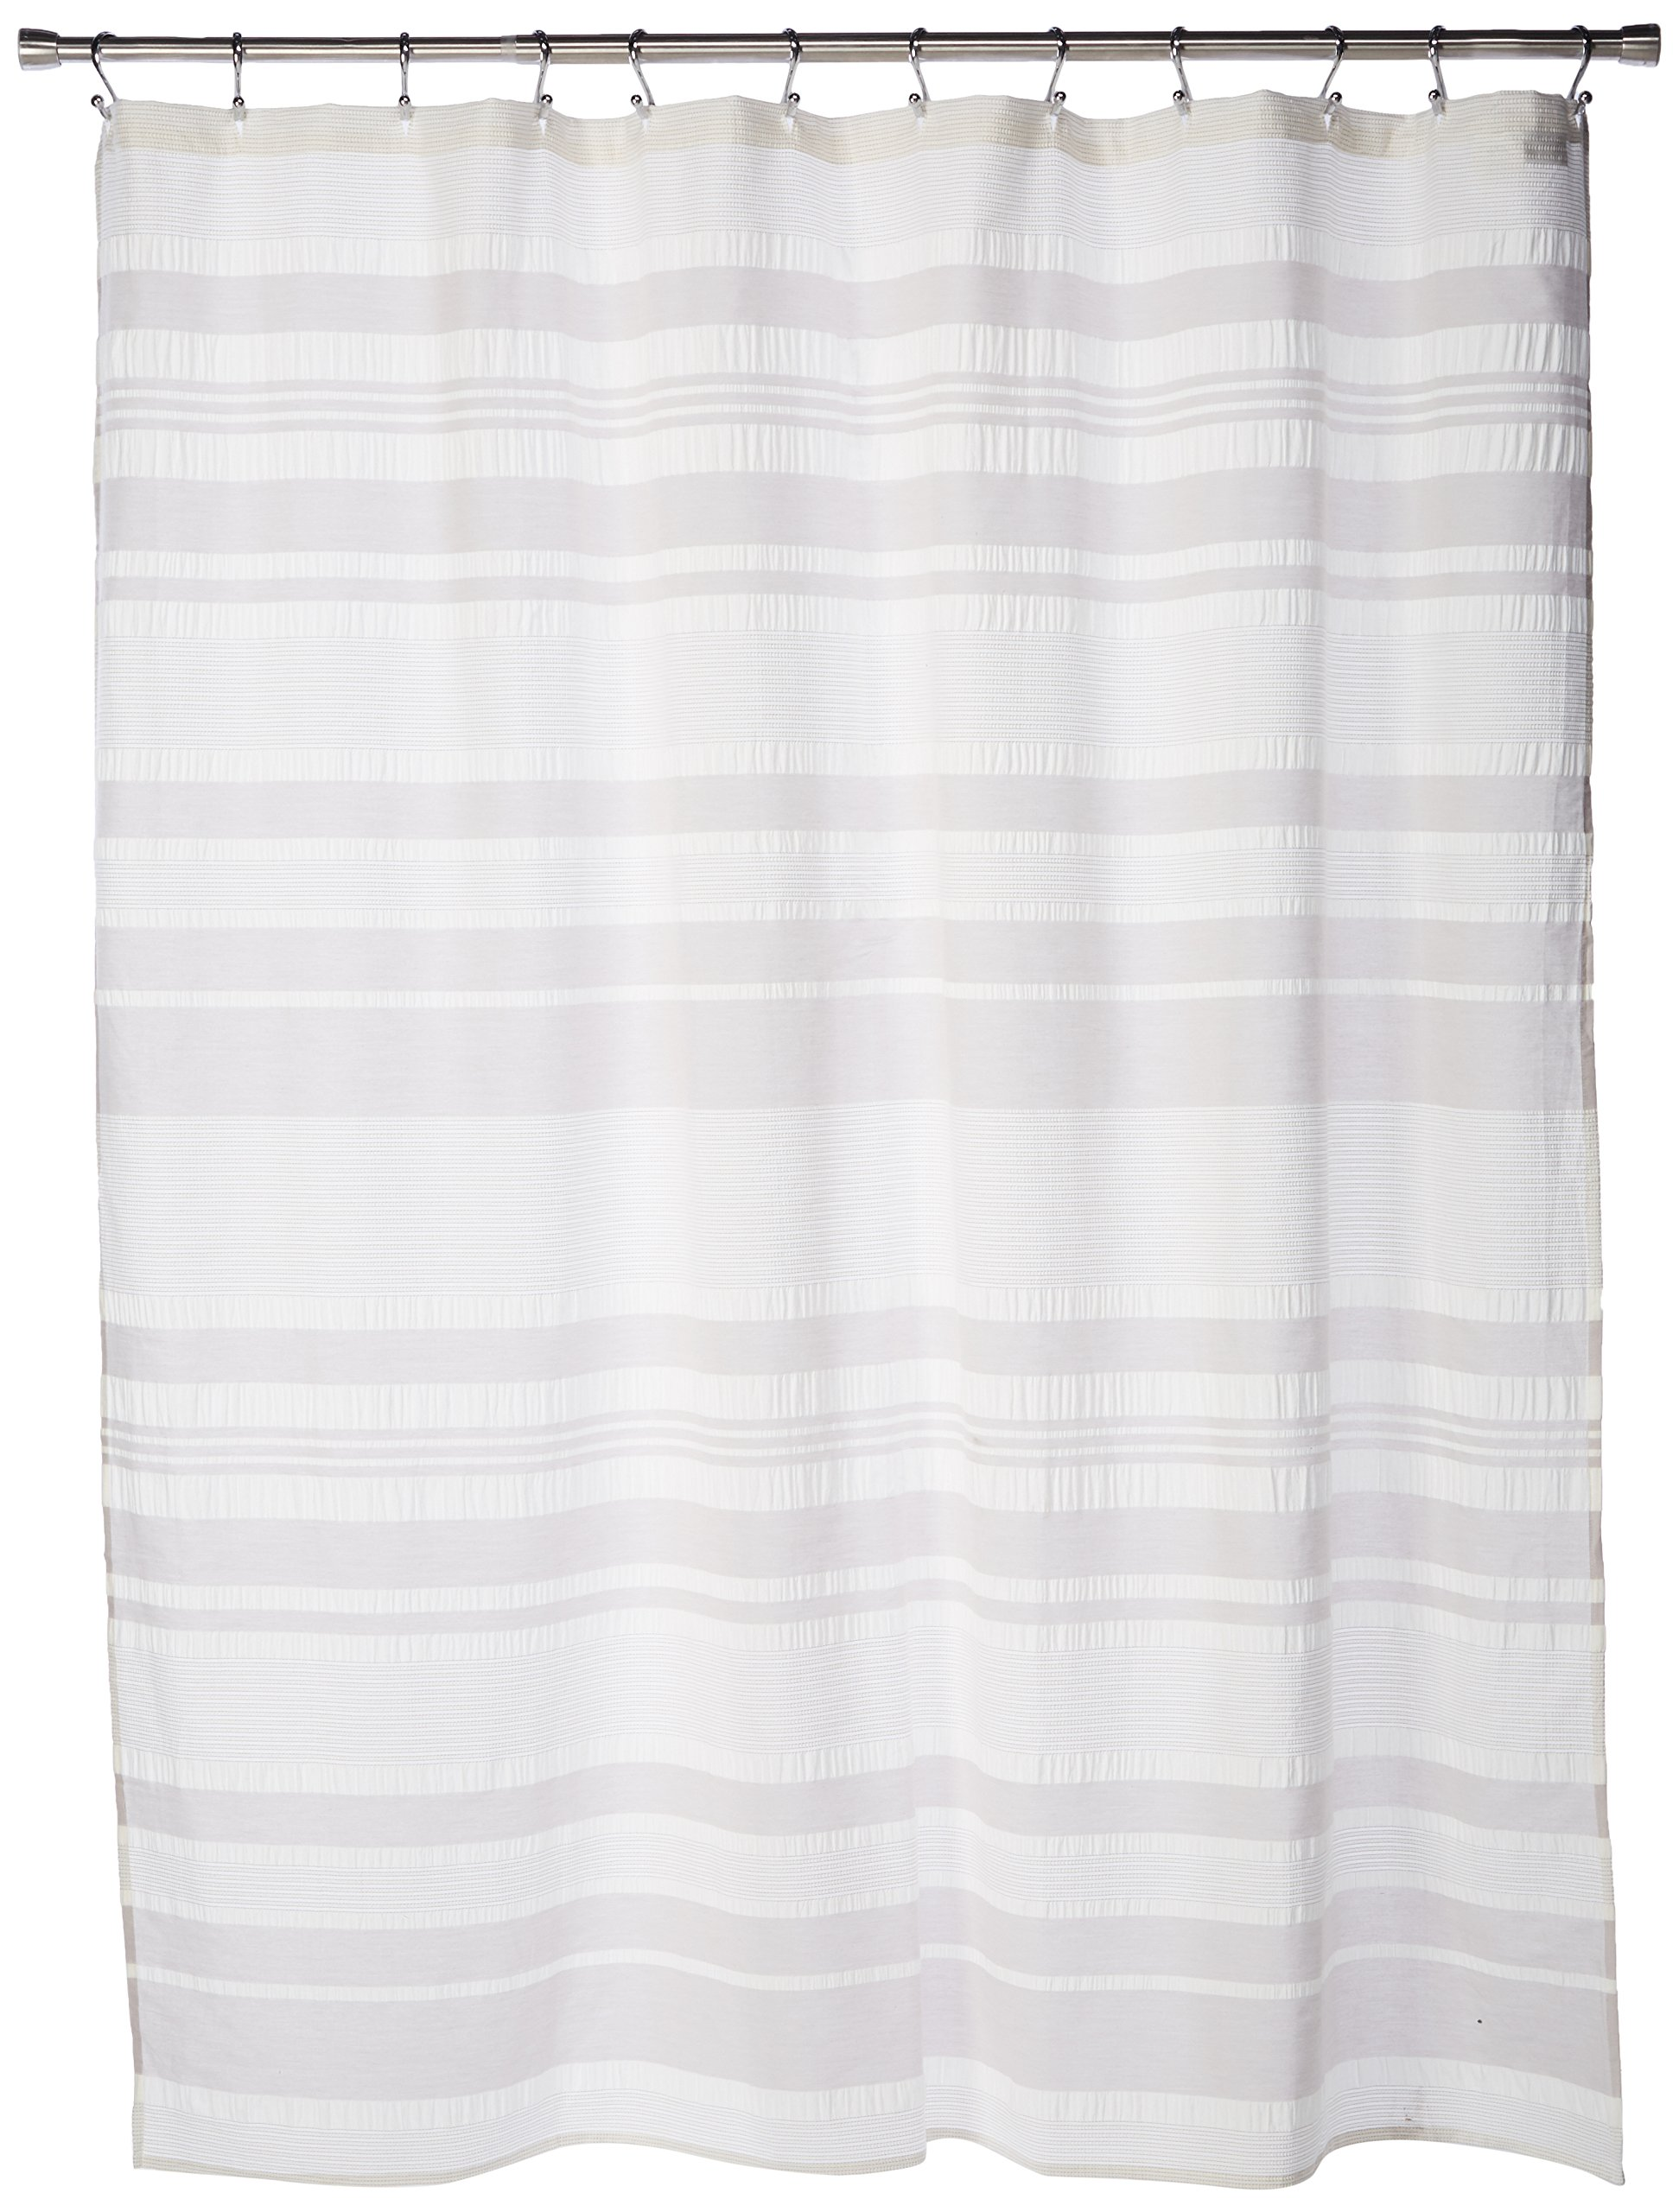 Ink+Ivy II70-659 Lakeside Cotton Shower Curtain, 72 x 72, Grey - Set includes: 1 shower curtain Materials: 100Percent cotton Measurements: 72-by-72-inch shower curtain - shower-curtains, bathroom-linens, bathroom - 81R%2BEYh83dL -